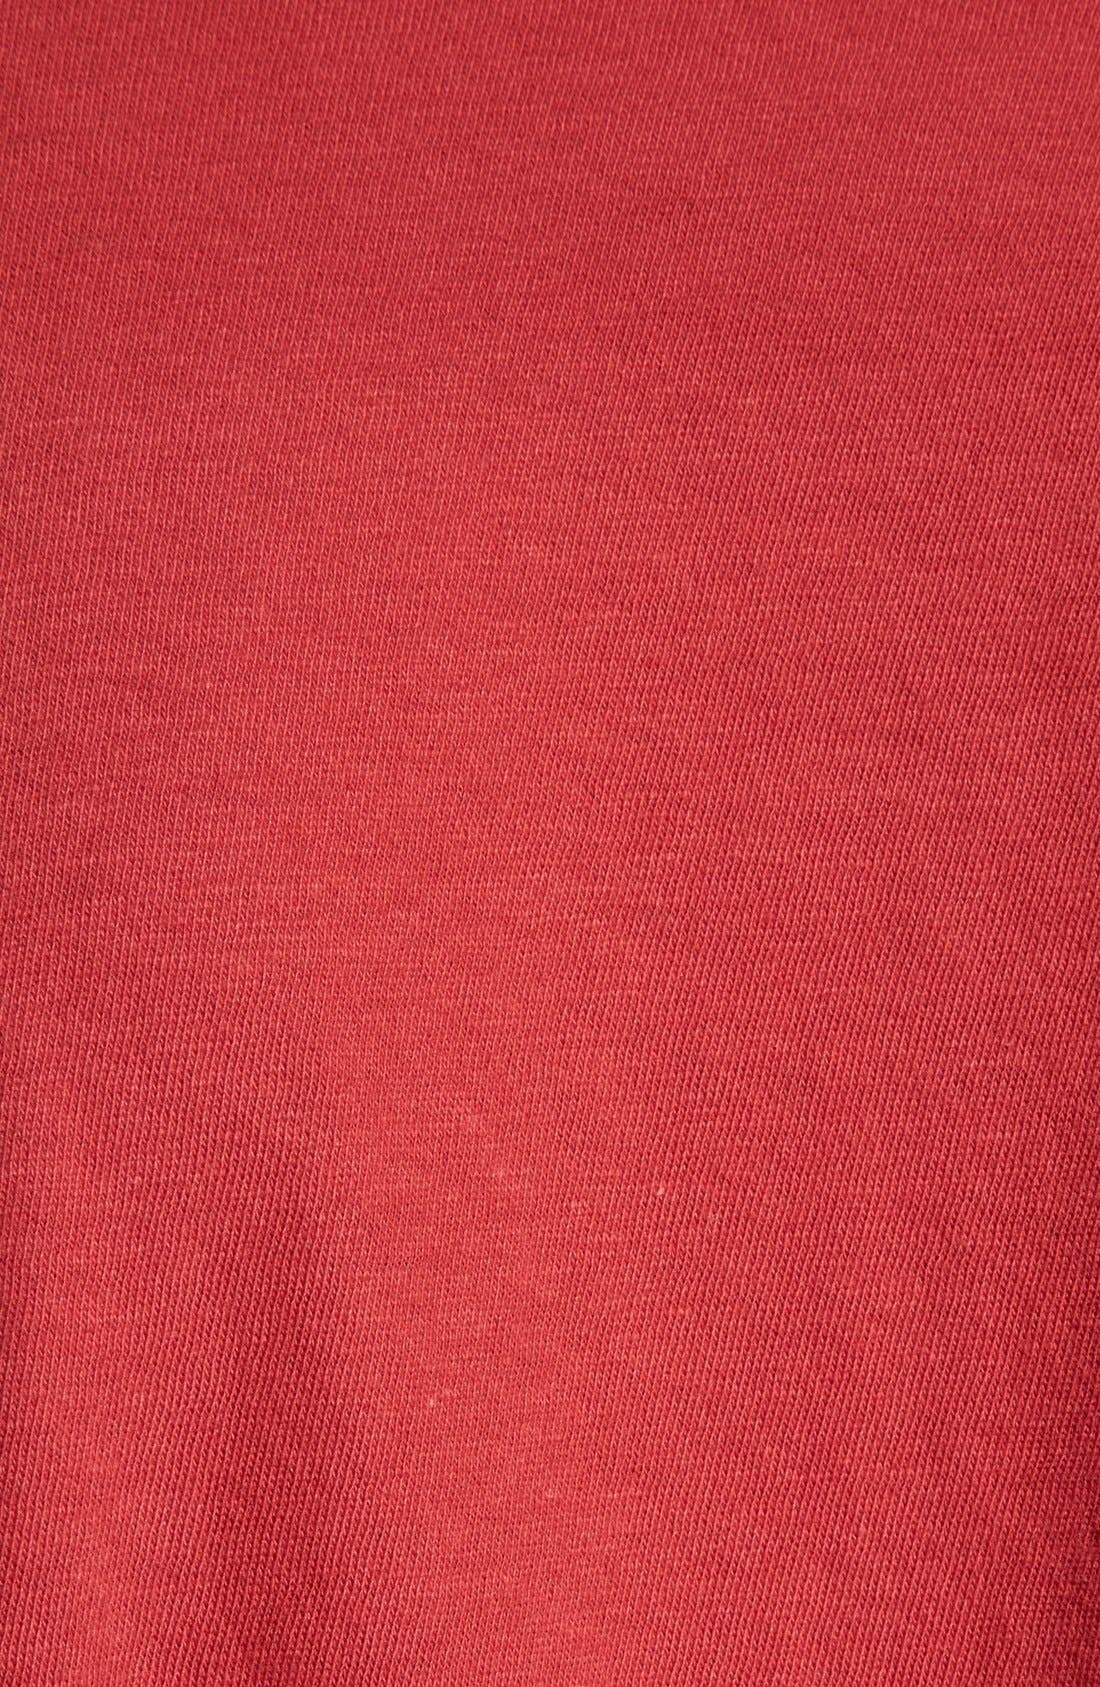 Alternate Image 3  - 47 Brand 'Boston Red Sox - Flanker' Graphic T-Shirt